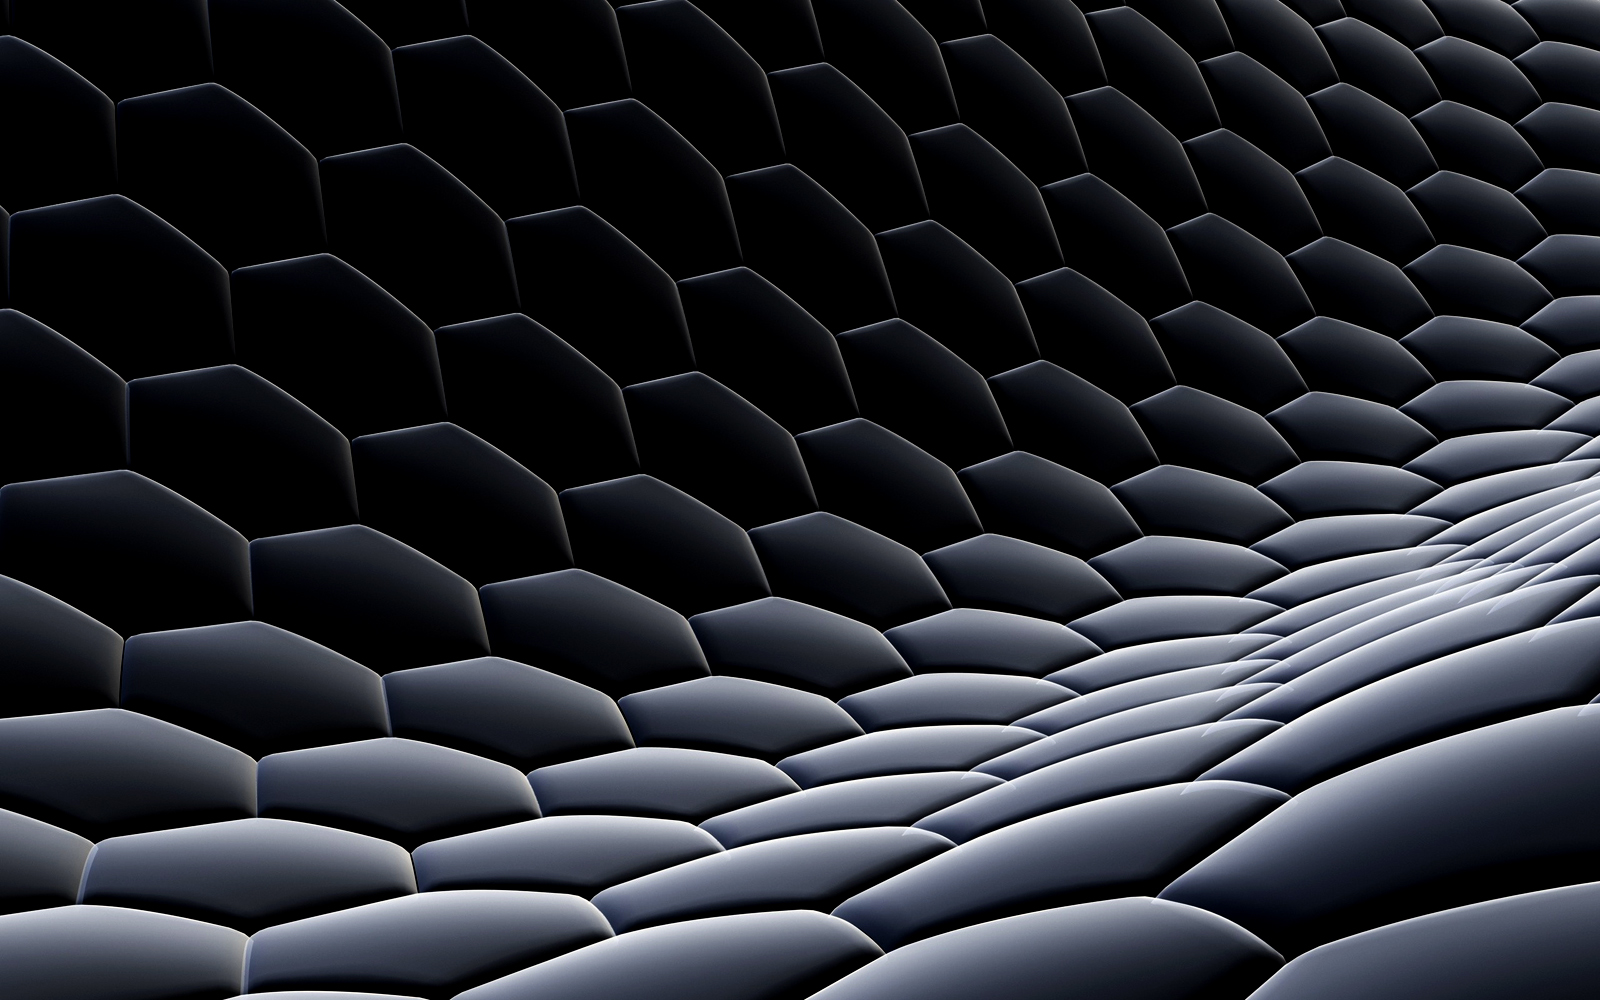 3d hexagonal dark hd wallpapers widescreen for desktop pc for 3d hd wallpapers